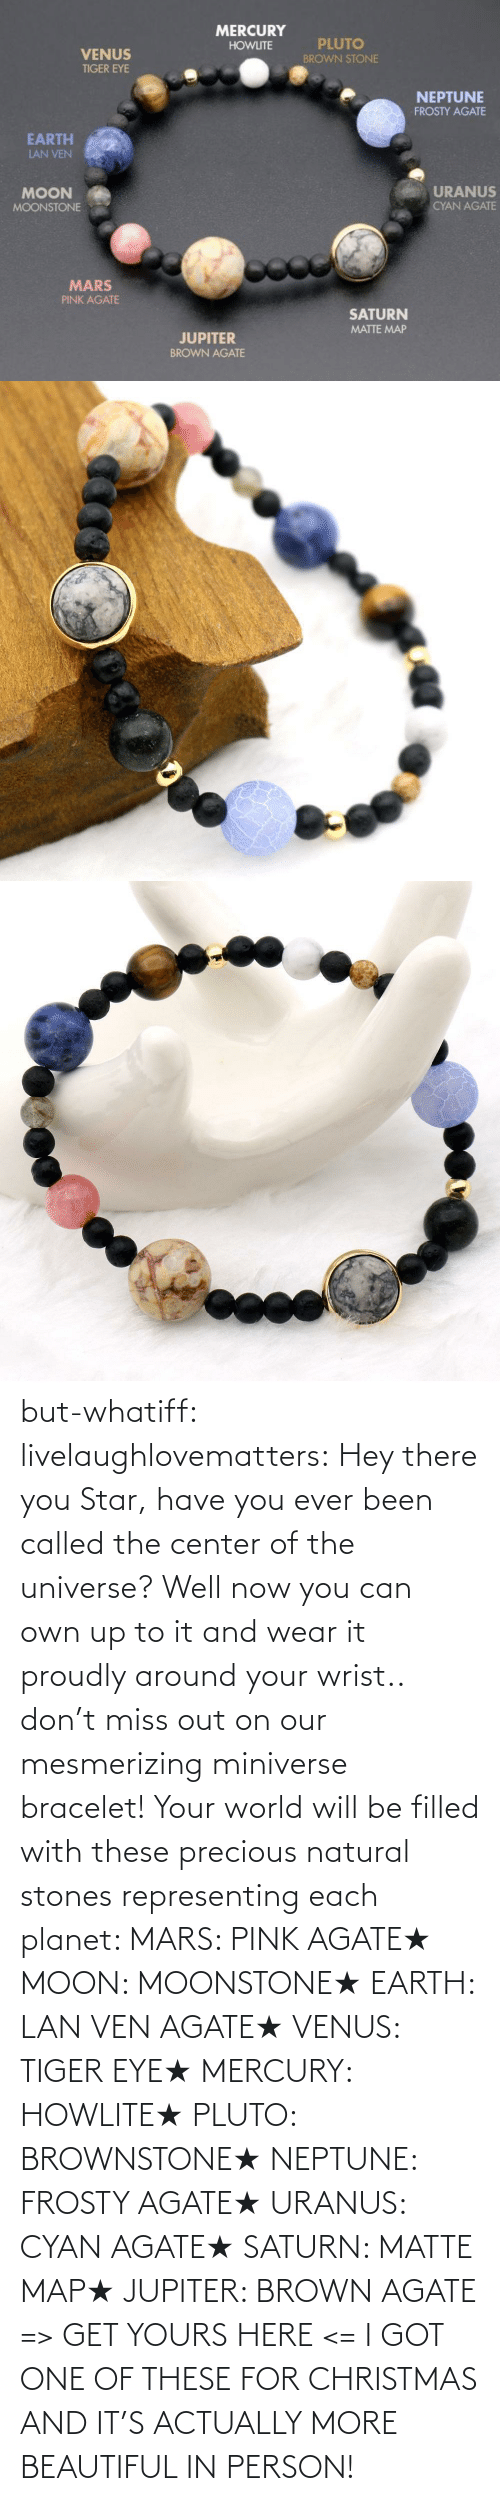 Jupiter: but-whatiff:  livelaughlovematters:  Hey there you Star, have you ever been called the center of the universe? Well now you can own up to it and wear it proudly around your wrist.. don't miss out on our mesmerizing miniverse bracelet! Your world will be filled with these precious natural stones representing each planet:  MARS: PINK AGATE★ MOON: MOONSTONE★ EARTH: LAN VEN AGATE★ VENUS: TIGER EYE★ MERCURY: HOWLITE★ PLUTO: BROWNSTONE★ NEPTUNE: FROSTY AGATE★ URANUS: CYAN AGATE★ SATURN: MATTE MAP★ JUPITER: BROWN AGATE => GET YOURS HERE <=  I GOT ONE OF THESE FOR CHRISTMAS AND IT'S ACTUALLY MORE BEAUTIFUL IN PERSON!